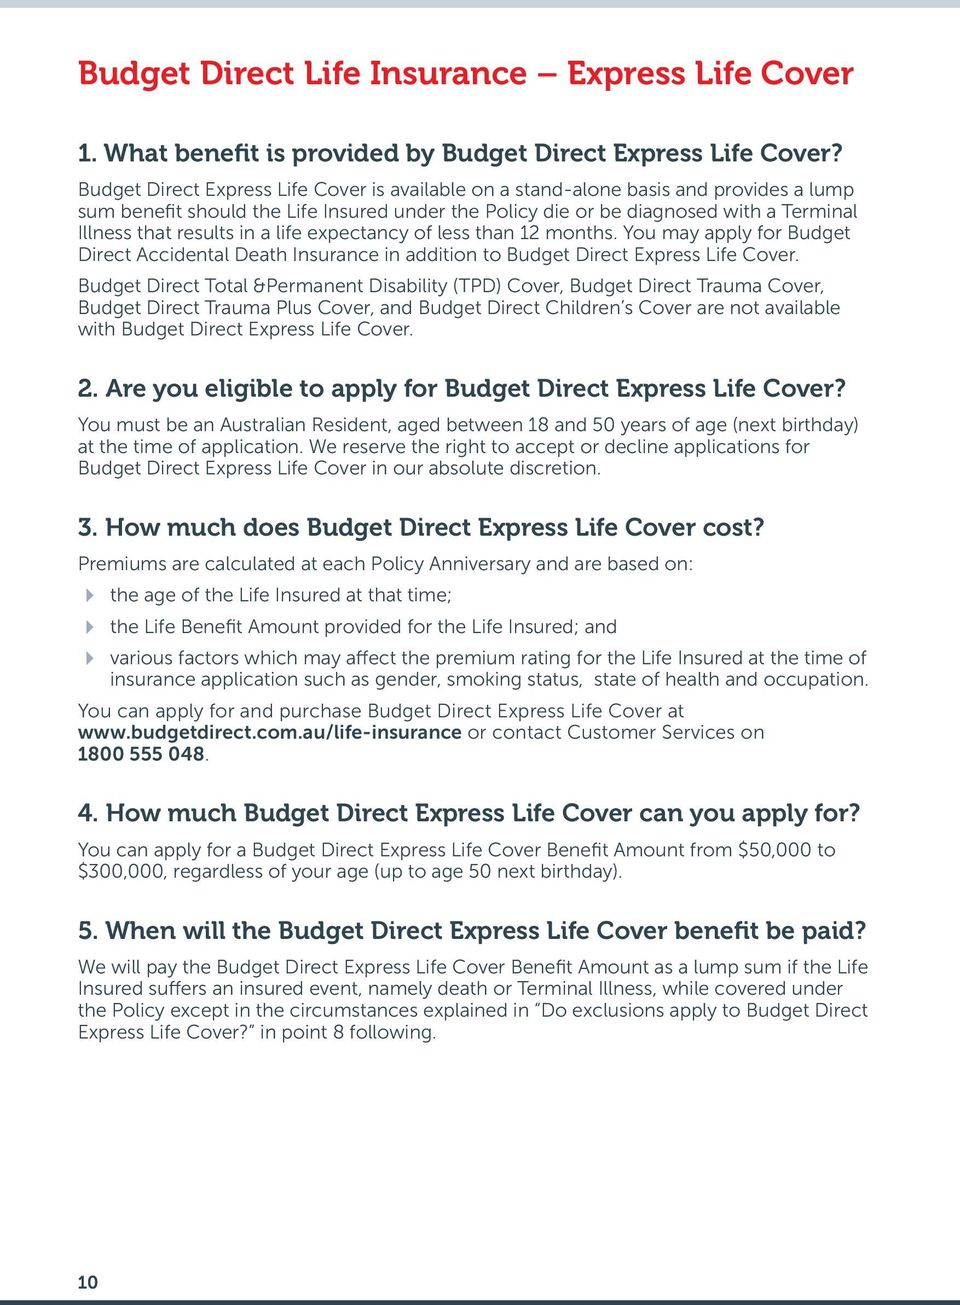 in a life expectancy of less than 12 months. You may apply for Budget Direct Accidental Death Insurance in addition to Budget Direct Express Life Cover.